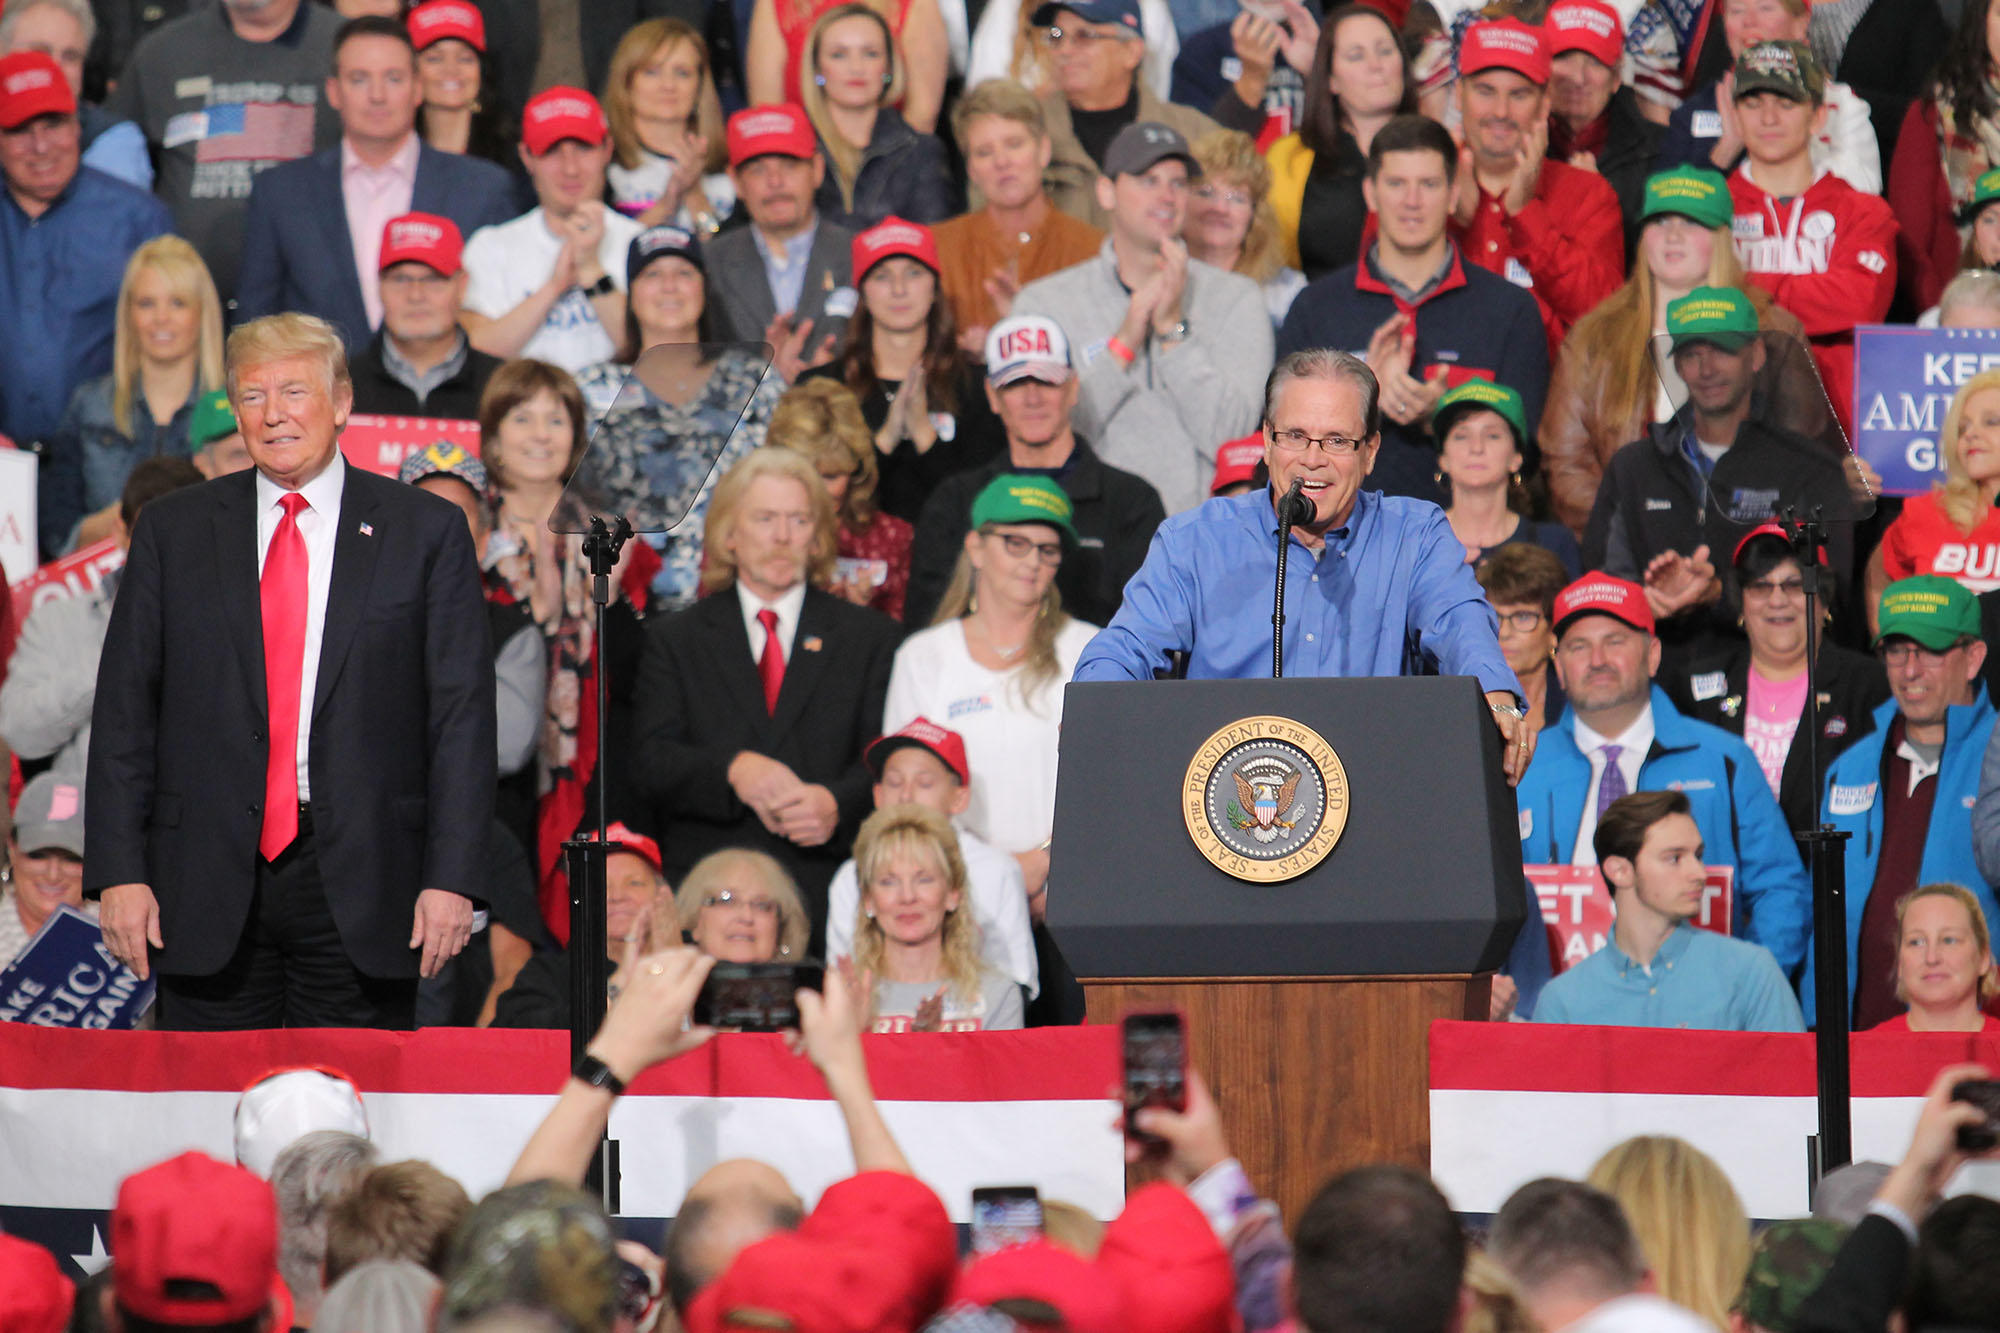 Senator Mike Braun rallies with President Donald Trump in Indianapolis in 2018.